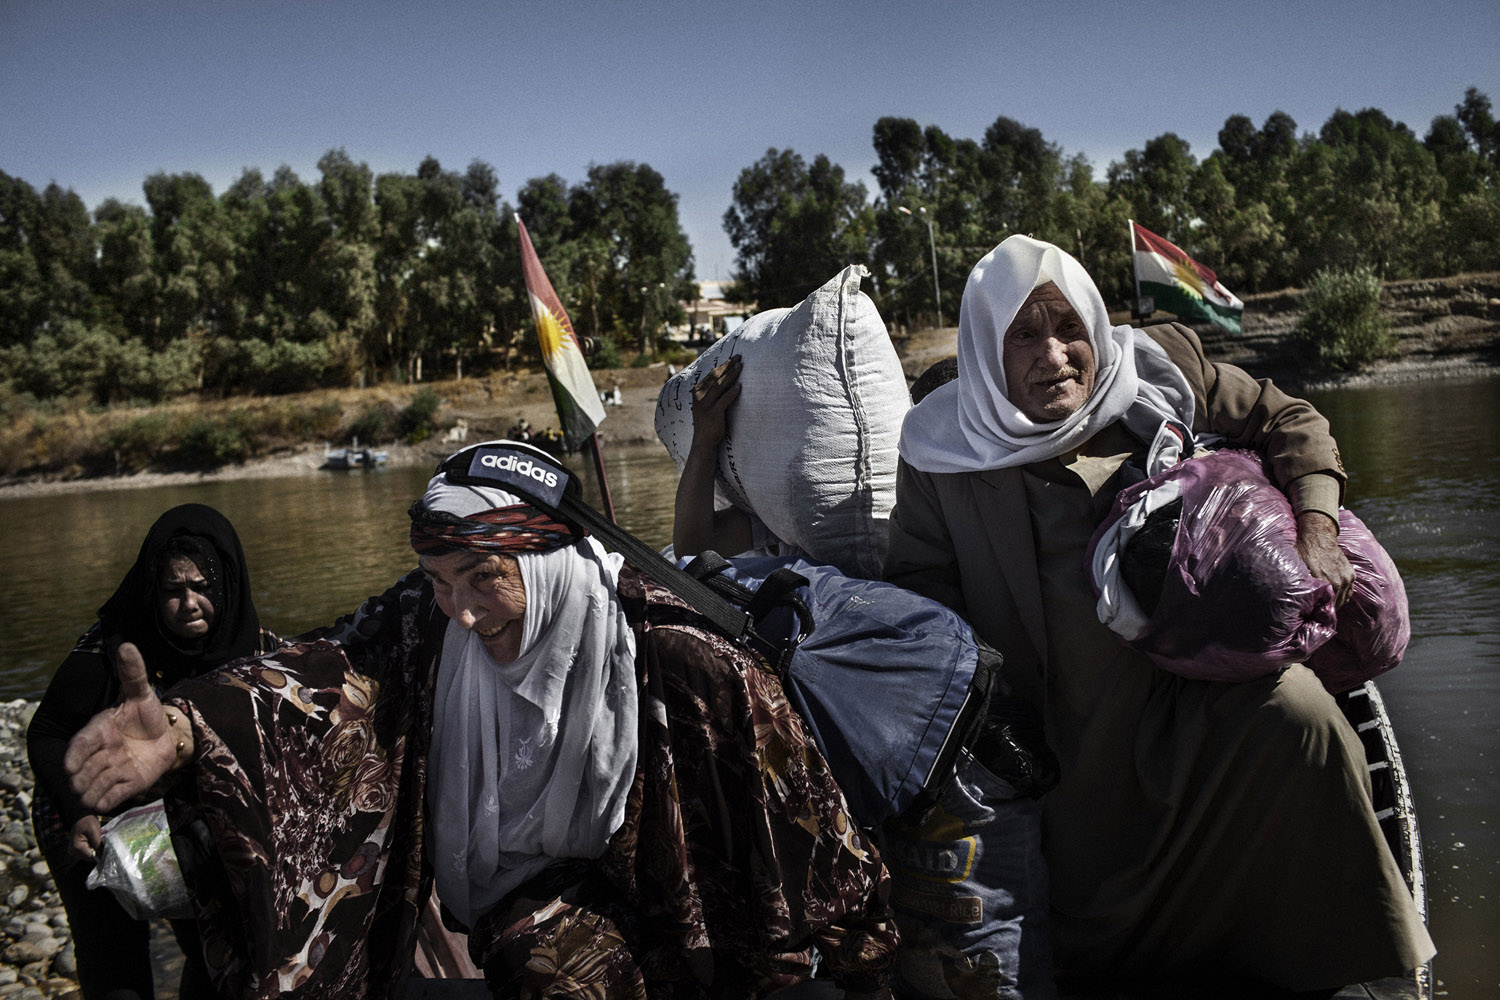 Displaced Syrian Kurds descend from the boat that shuttled them over the Tigris River to Iraq. Several refugees who fled the war in Syria returned to visit their relatives who stay in their native land.